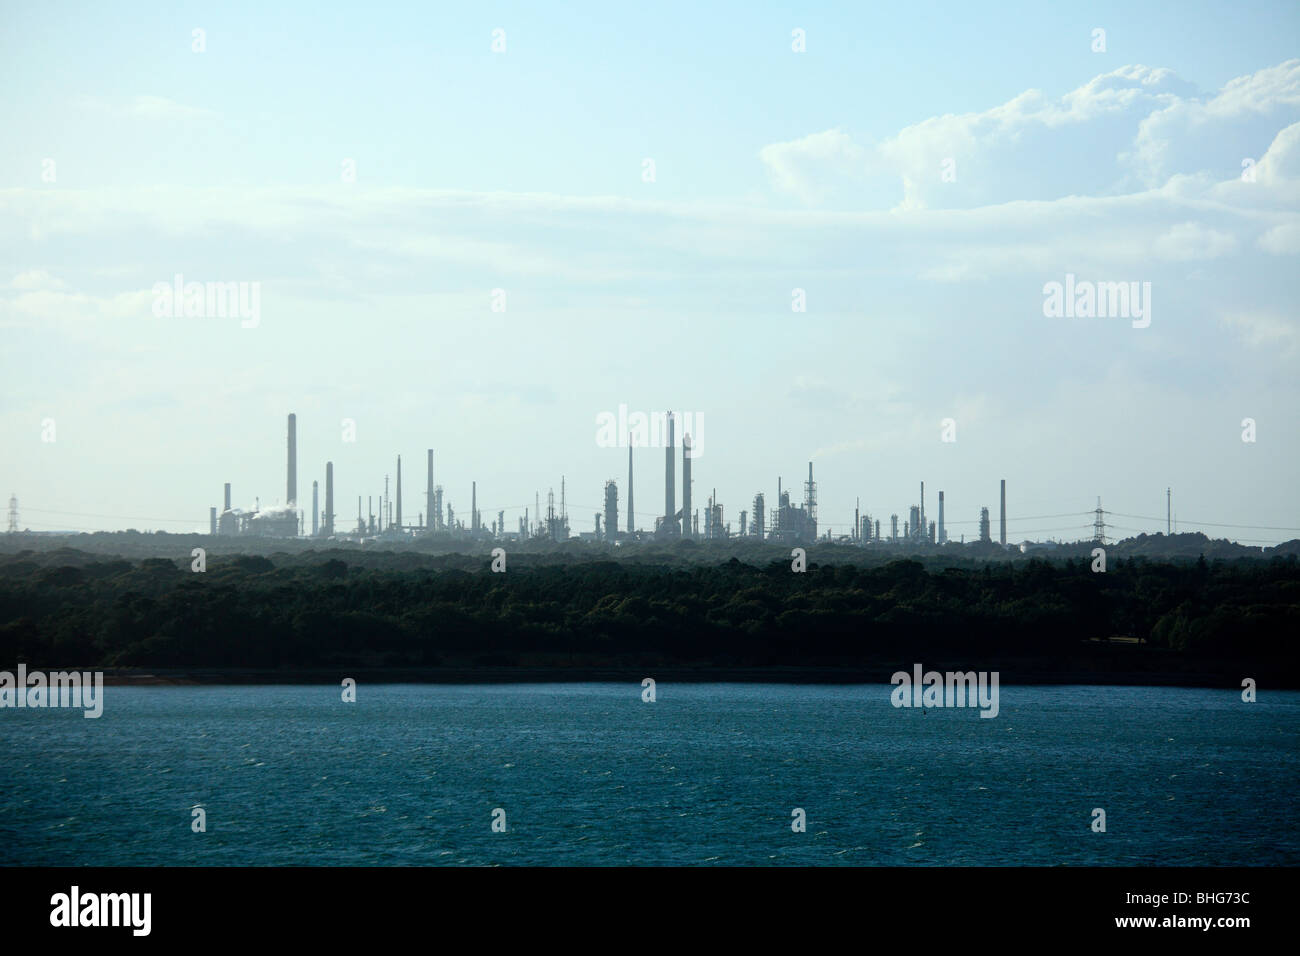 Southampton water and fawley oil refinery - Stock Image